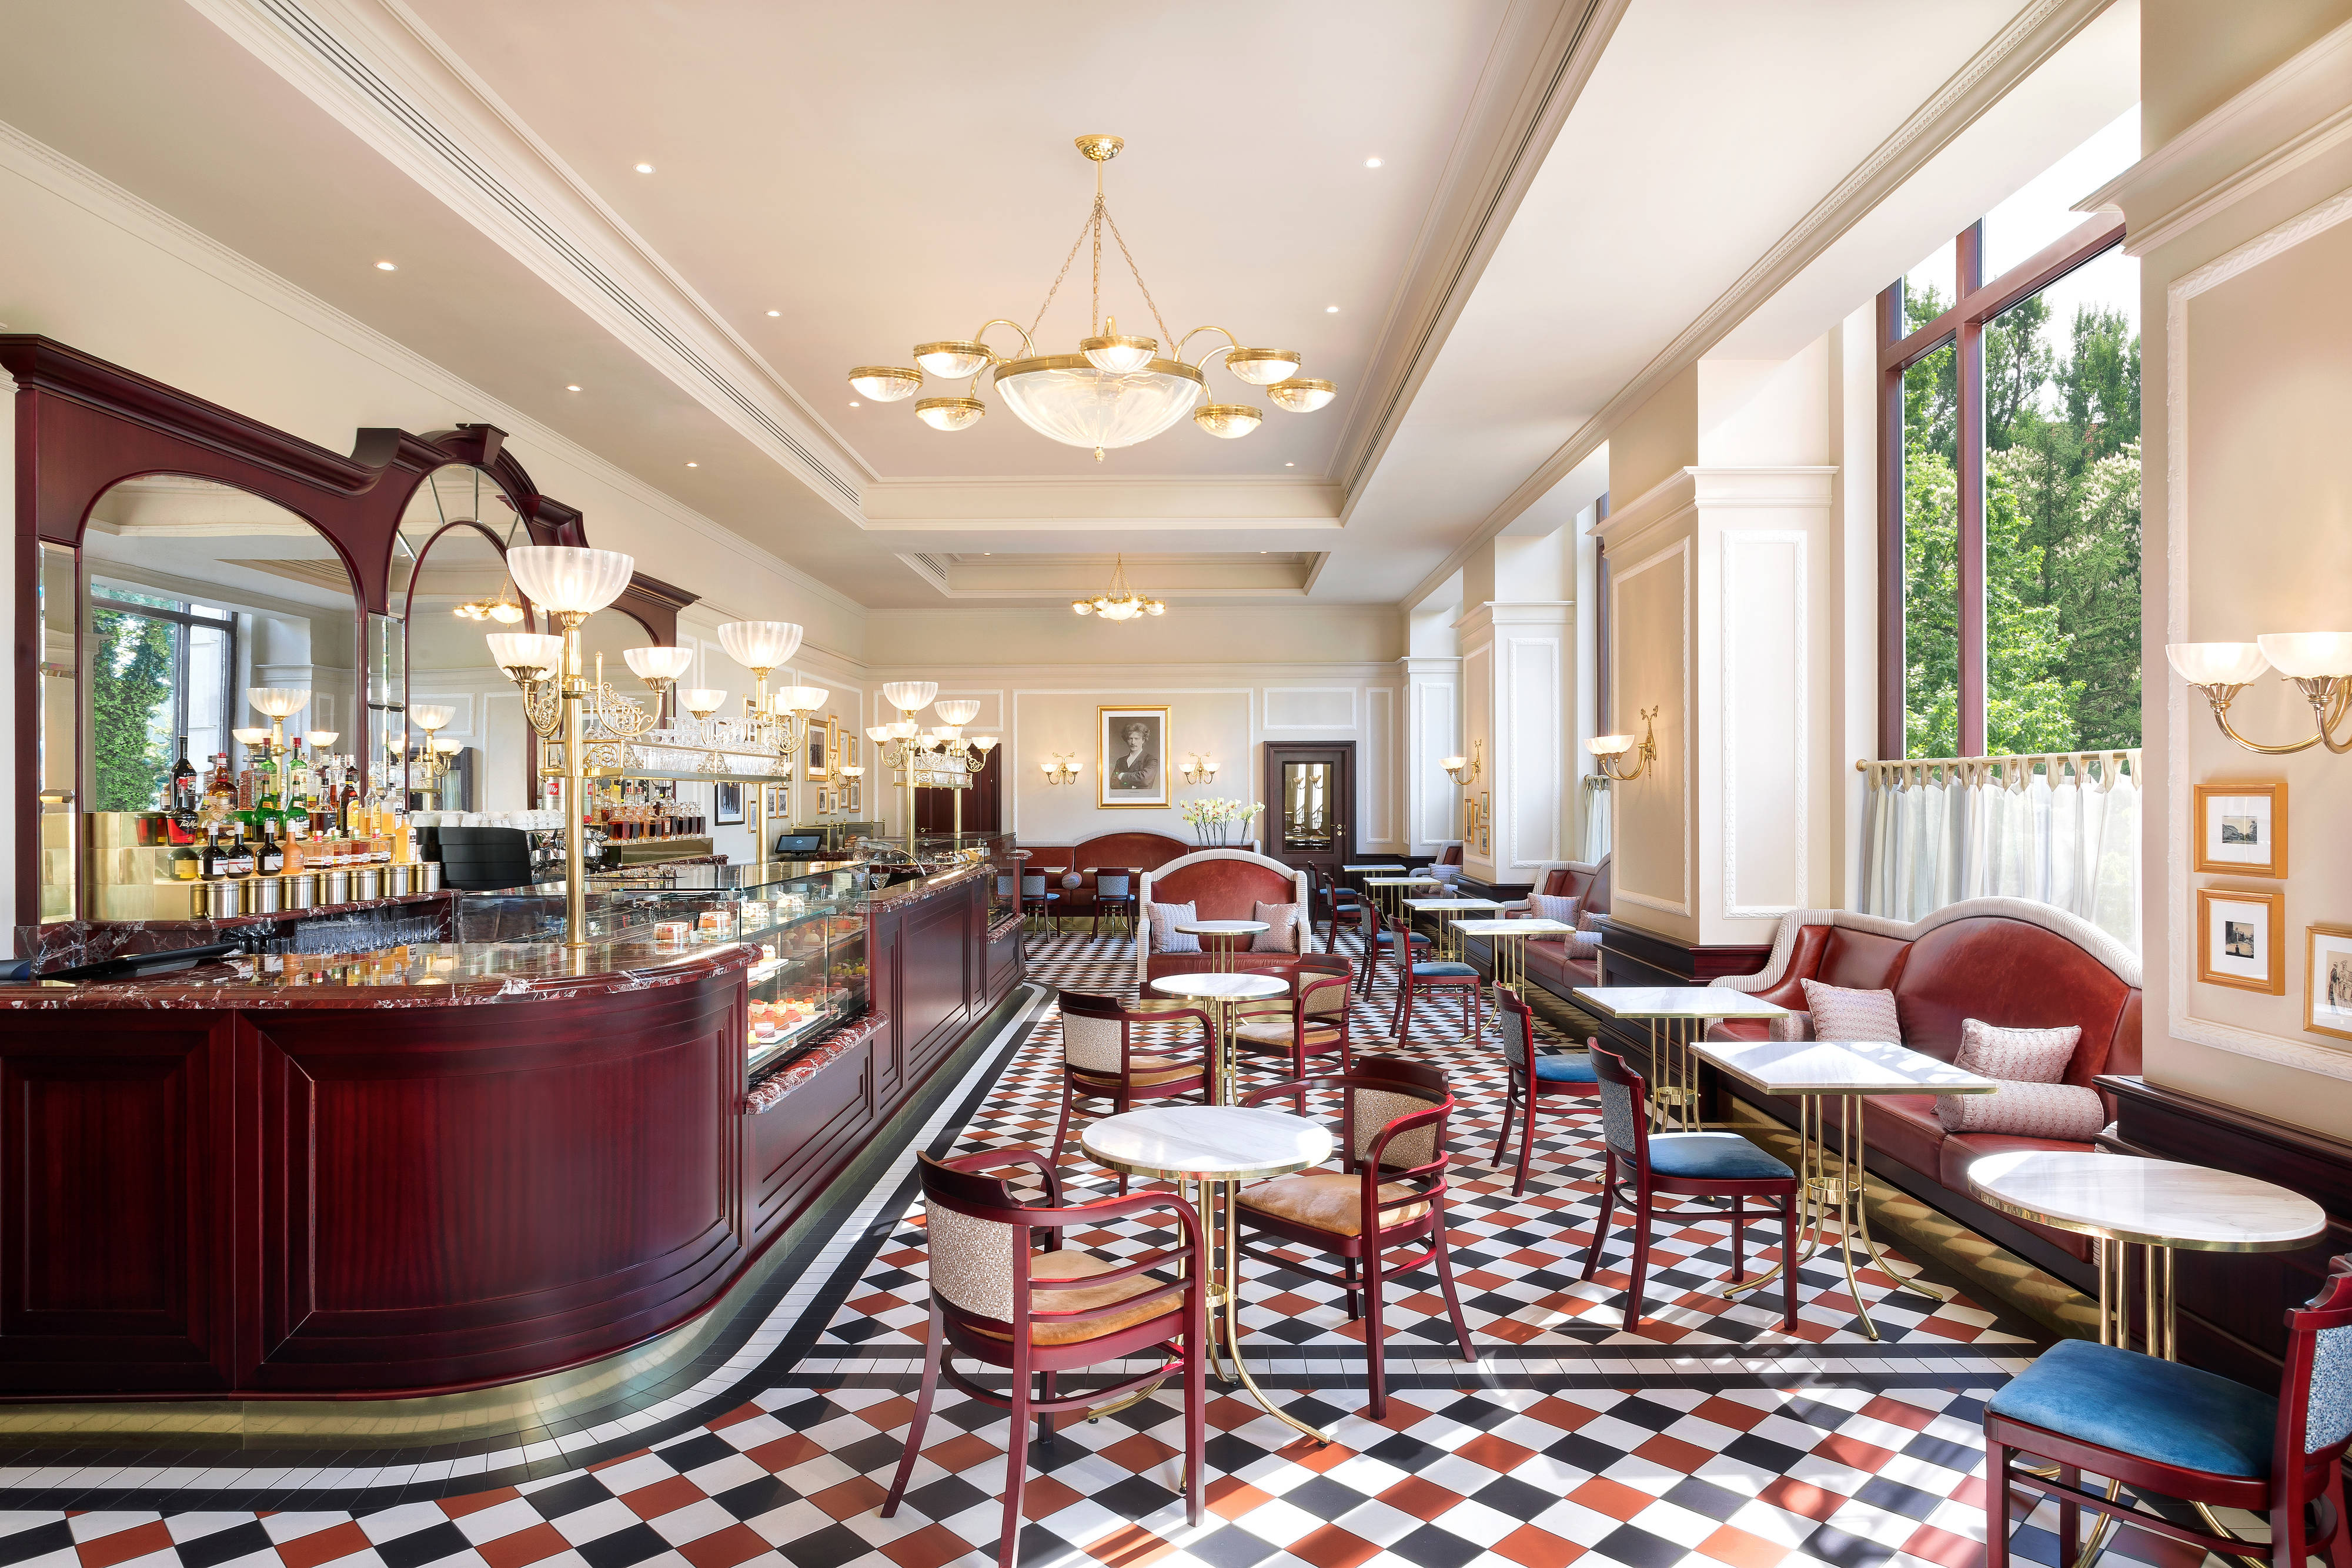 Hotel Bristol Warsaw Poland (Luxury Collection) CAFE